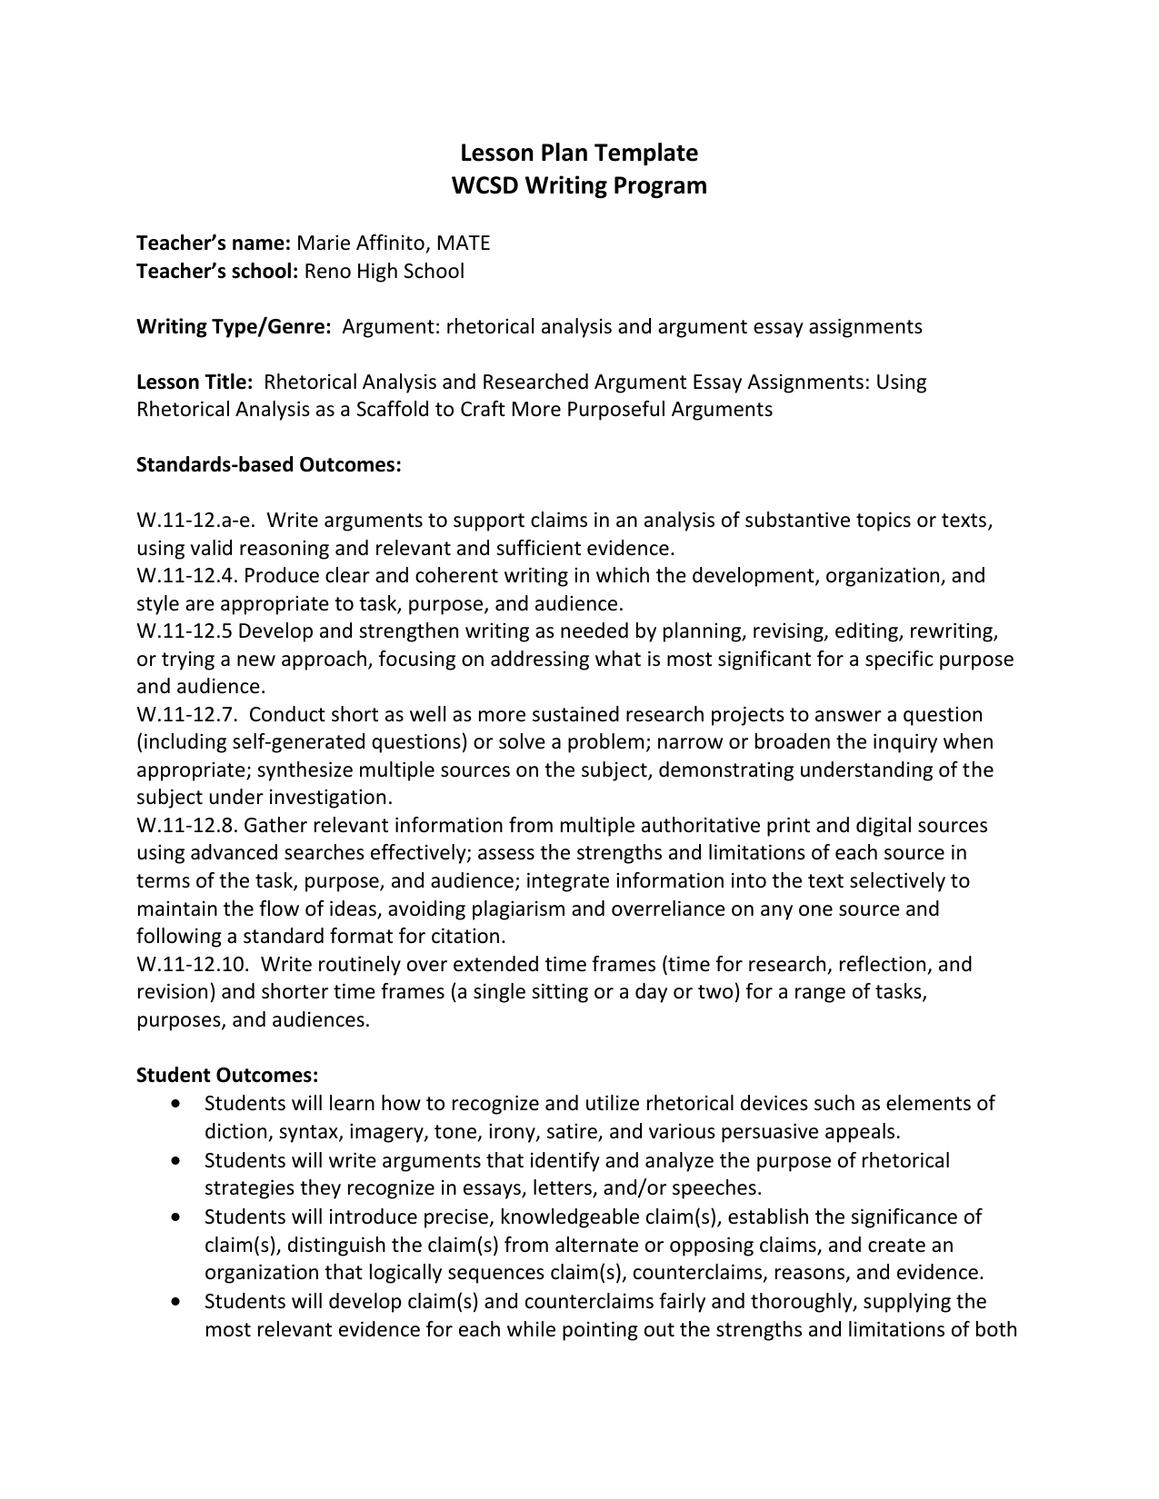 rhetorical analysis and researched argument essay assignments by rhetorical analysis and researched argument essay assignments by washoe county school district issuu